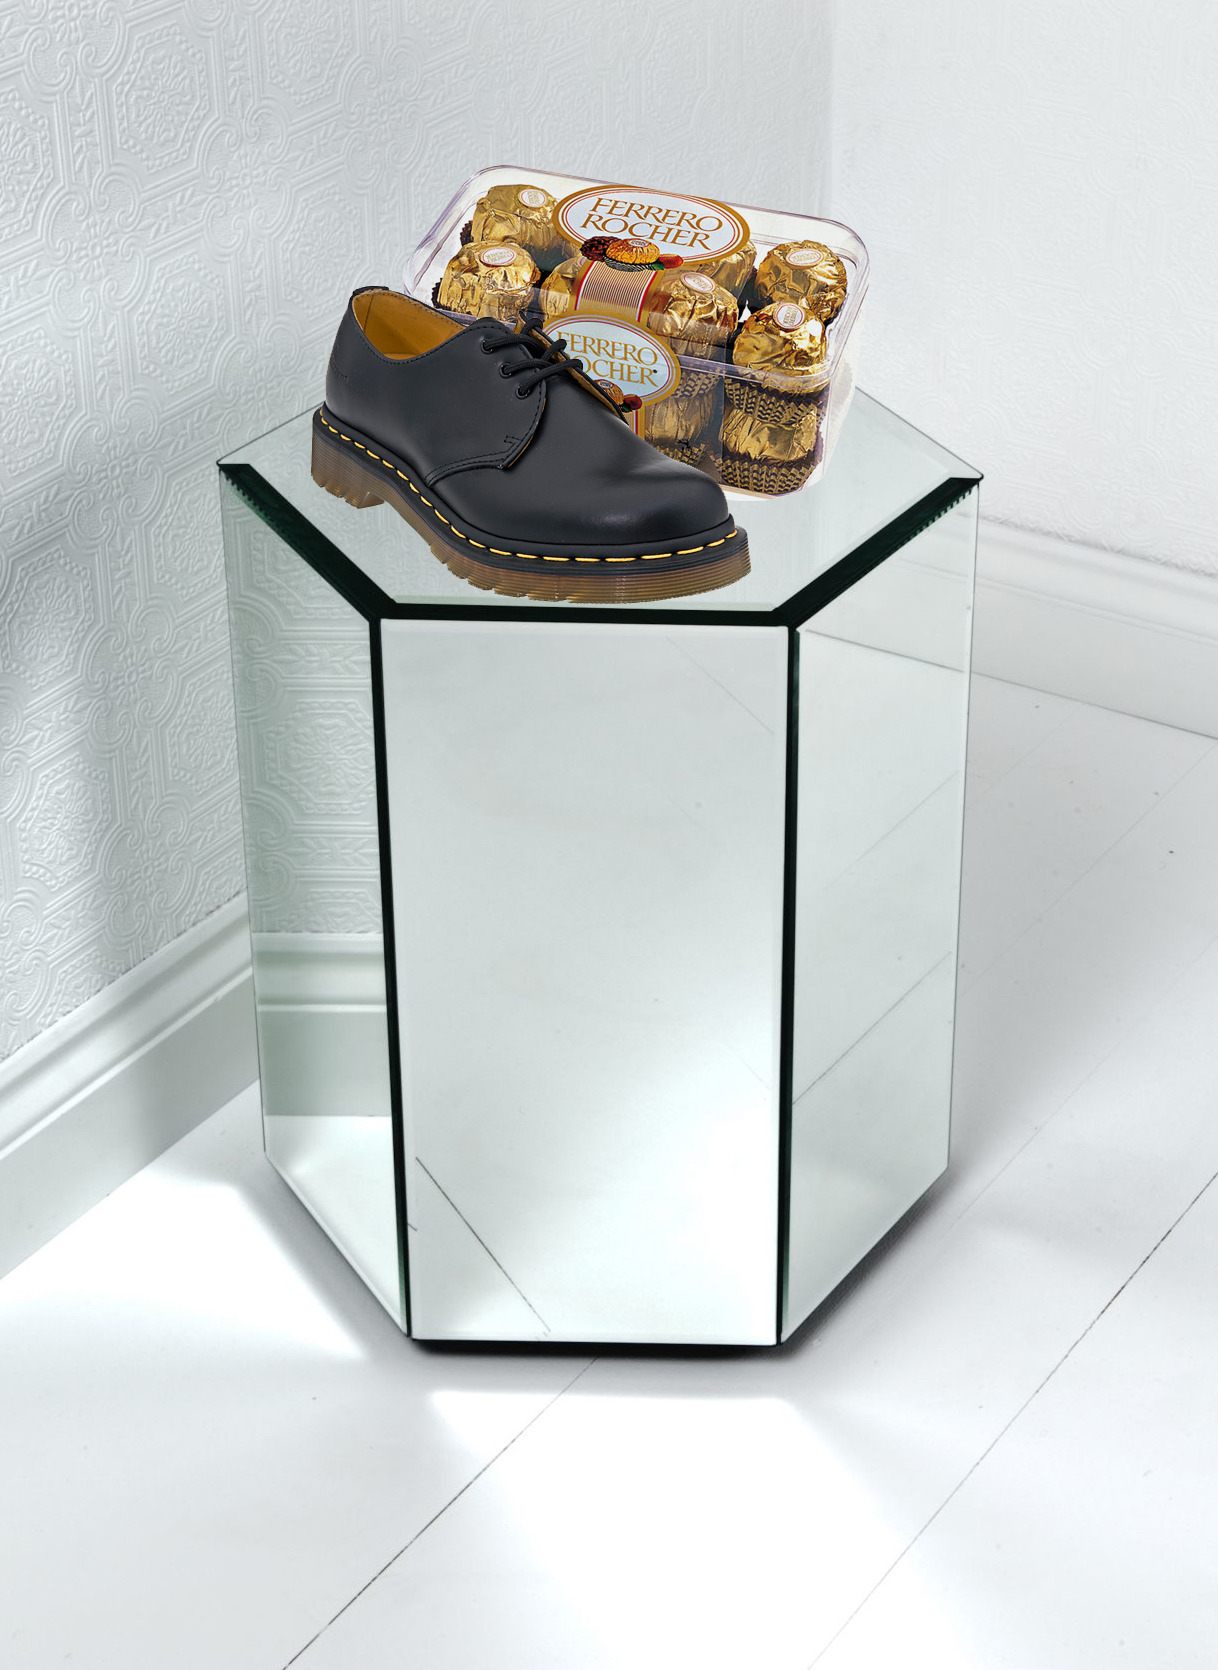 FERRERO ROCHER AND DR MARTENS ON GLASS PEDESTAL, 2012 Sculpture @